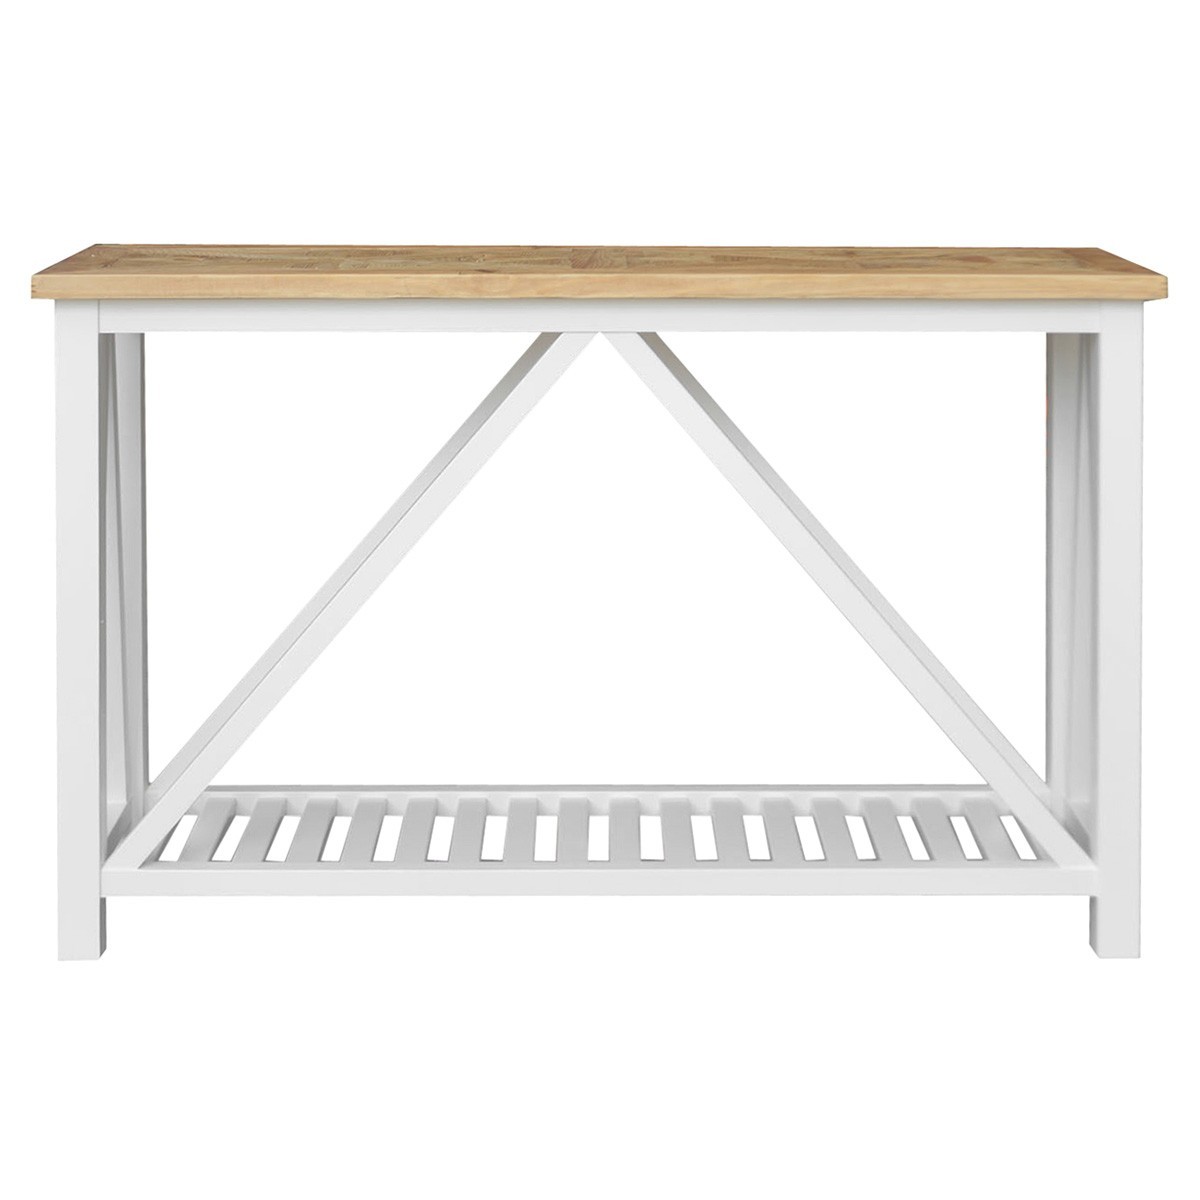 Avista Parquetry Top Recycled Timber Console Table, 140cm, Natural / White